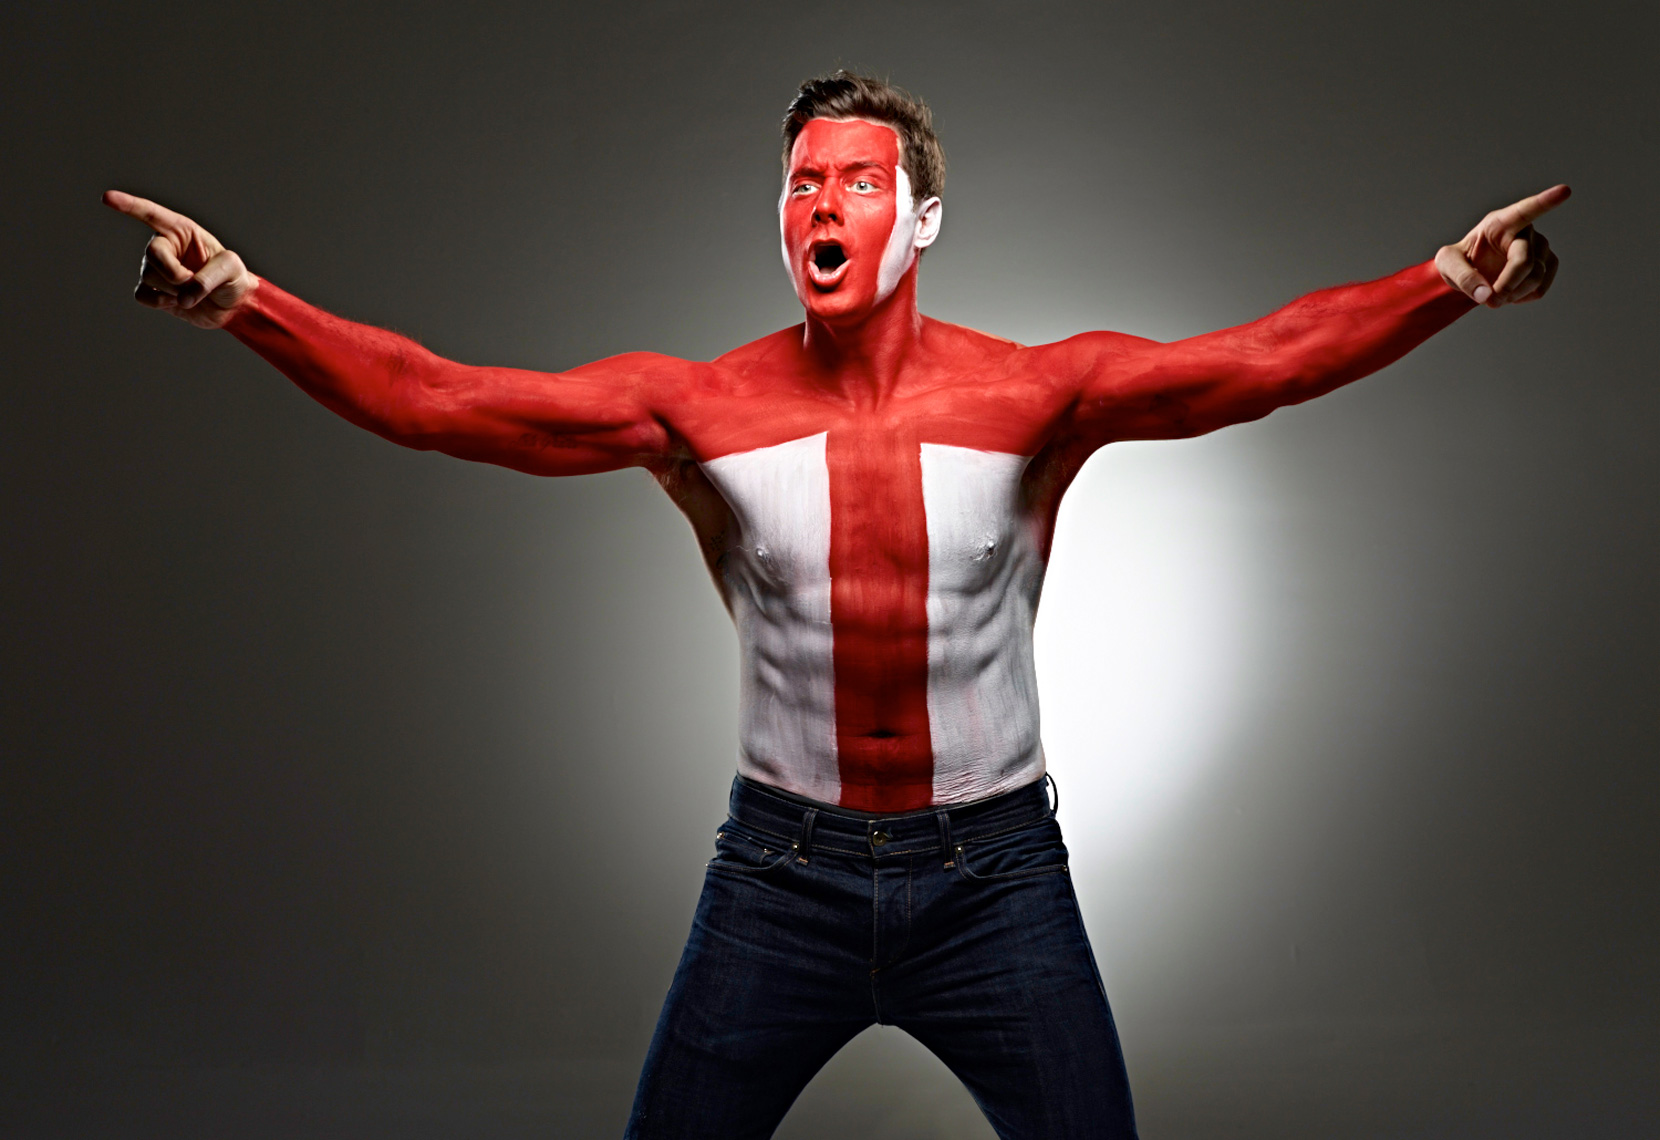 England Footbol soccer fan face paint photo by Monte Isom